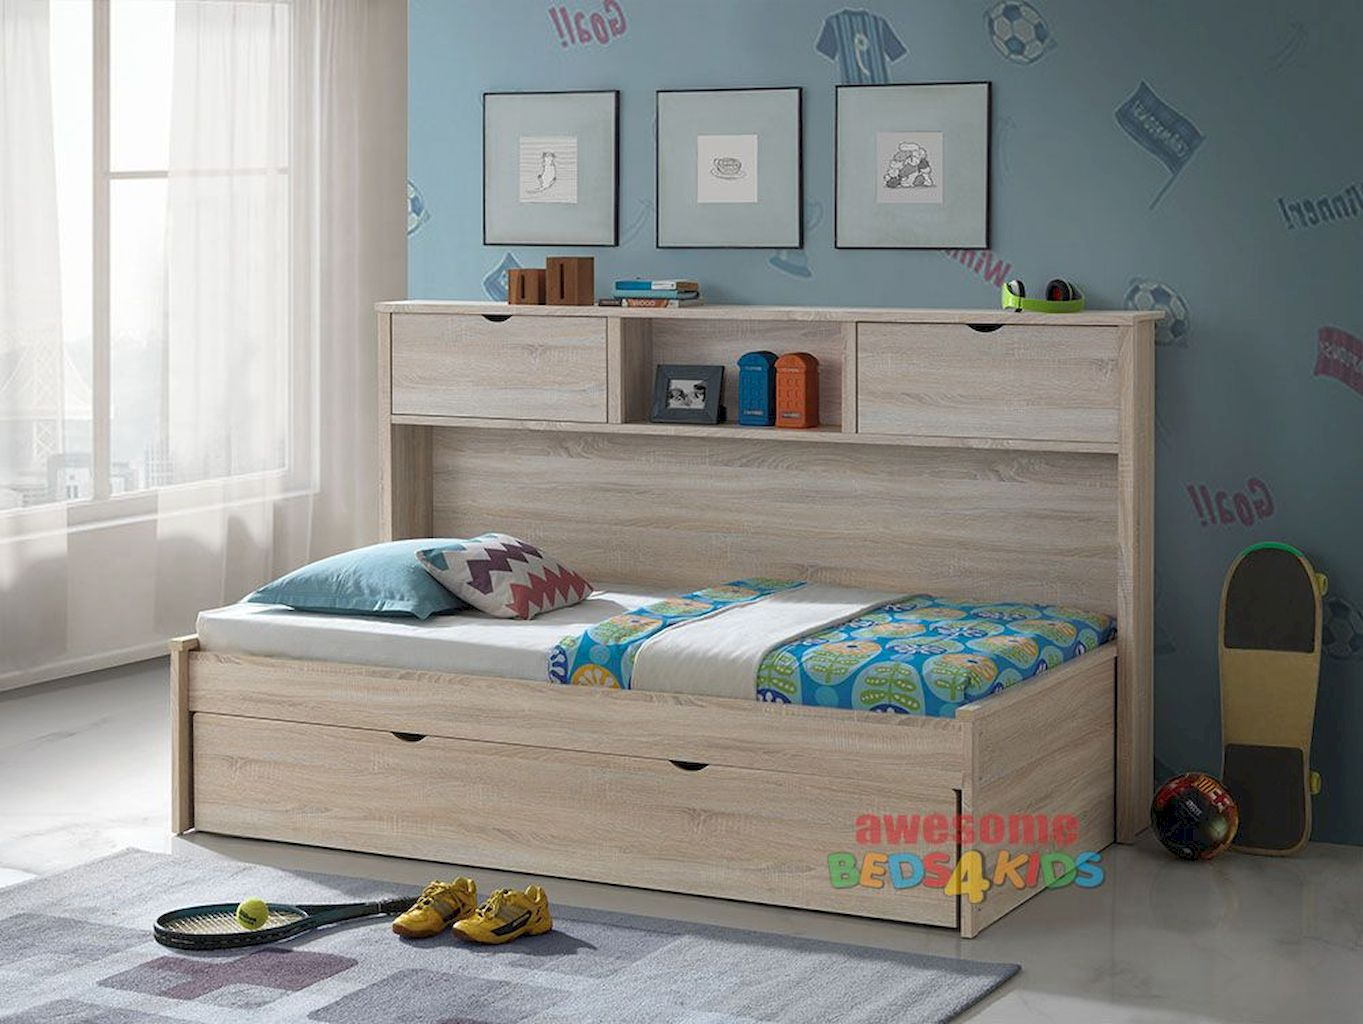 Cozy Single Bedroom Concept for Teens and Singles Part 1